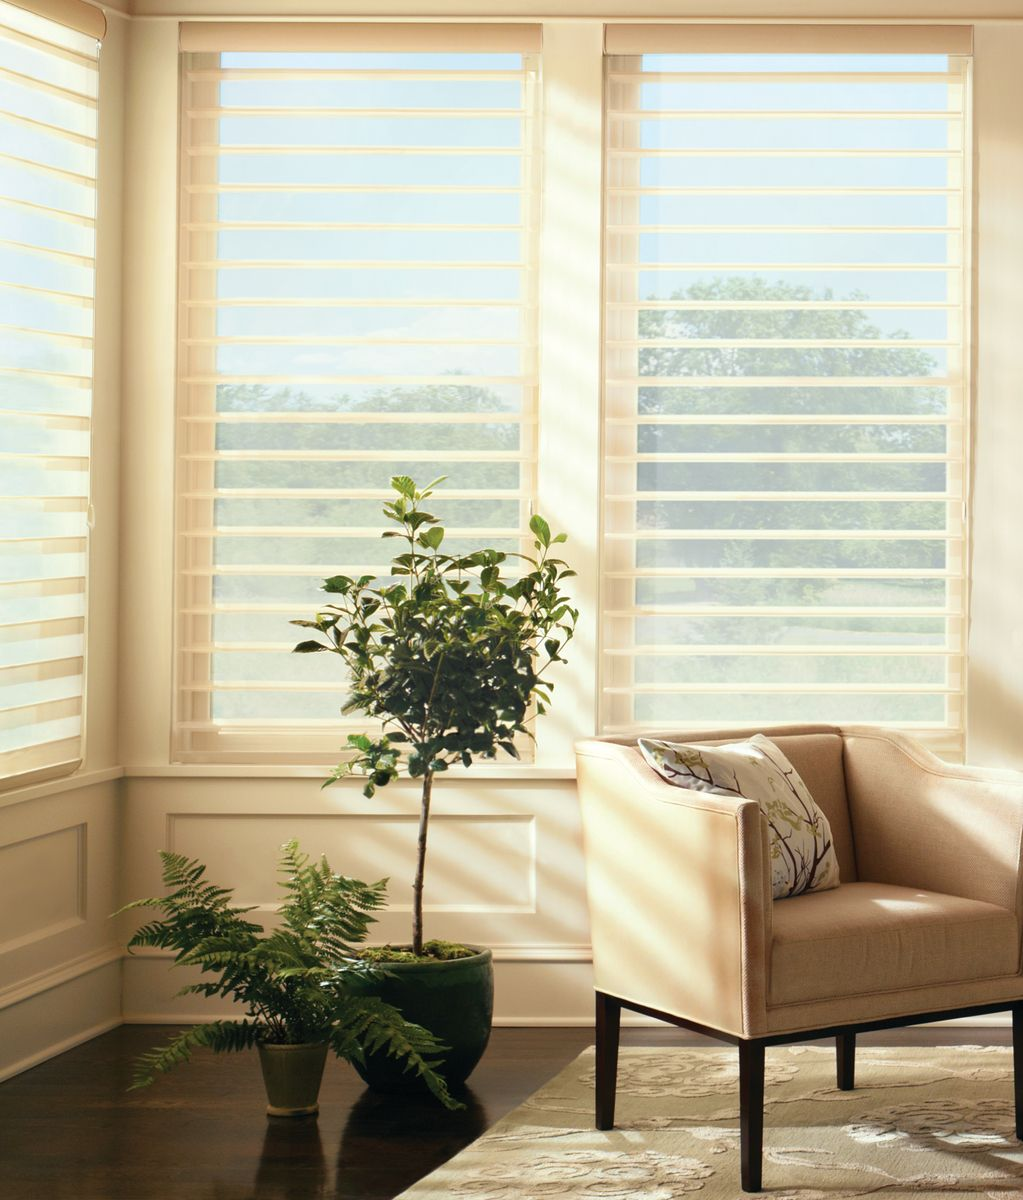 House window shade design  nantucket  my next projects  pinterest  window window coverings